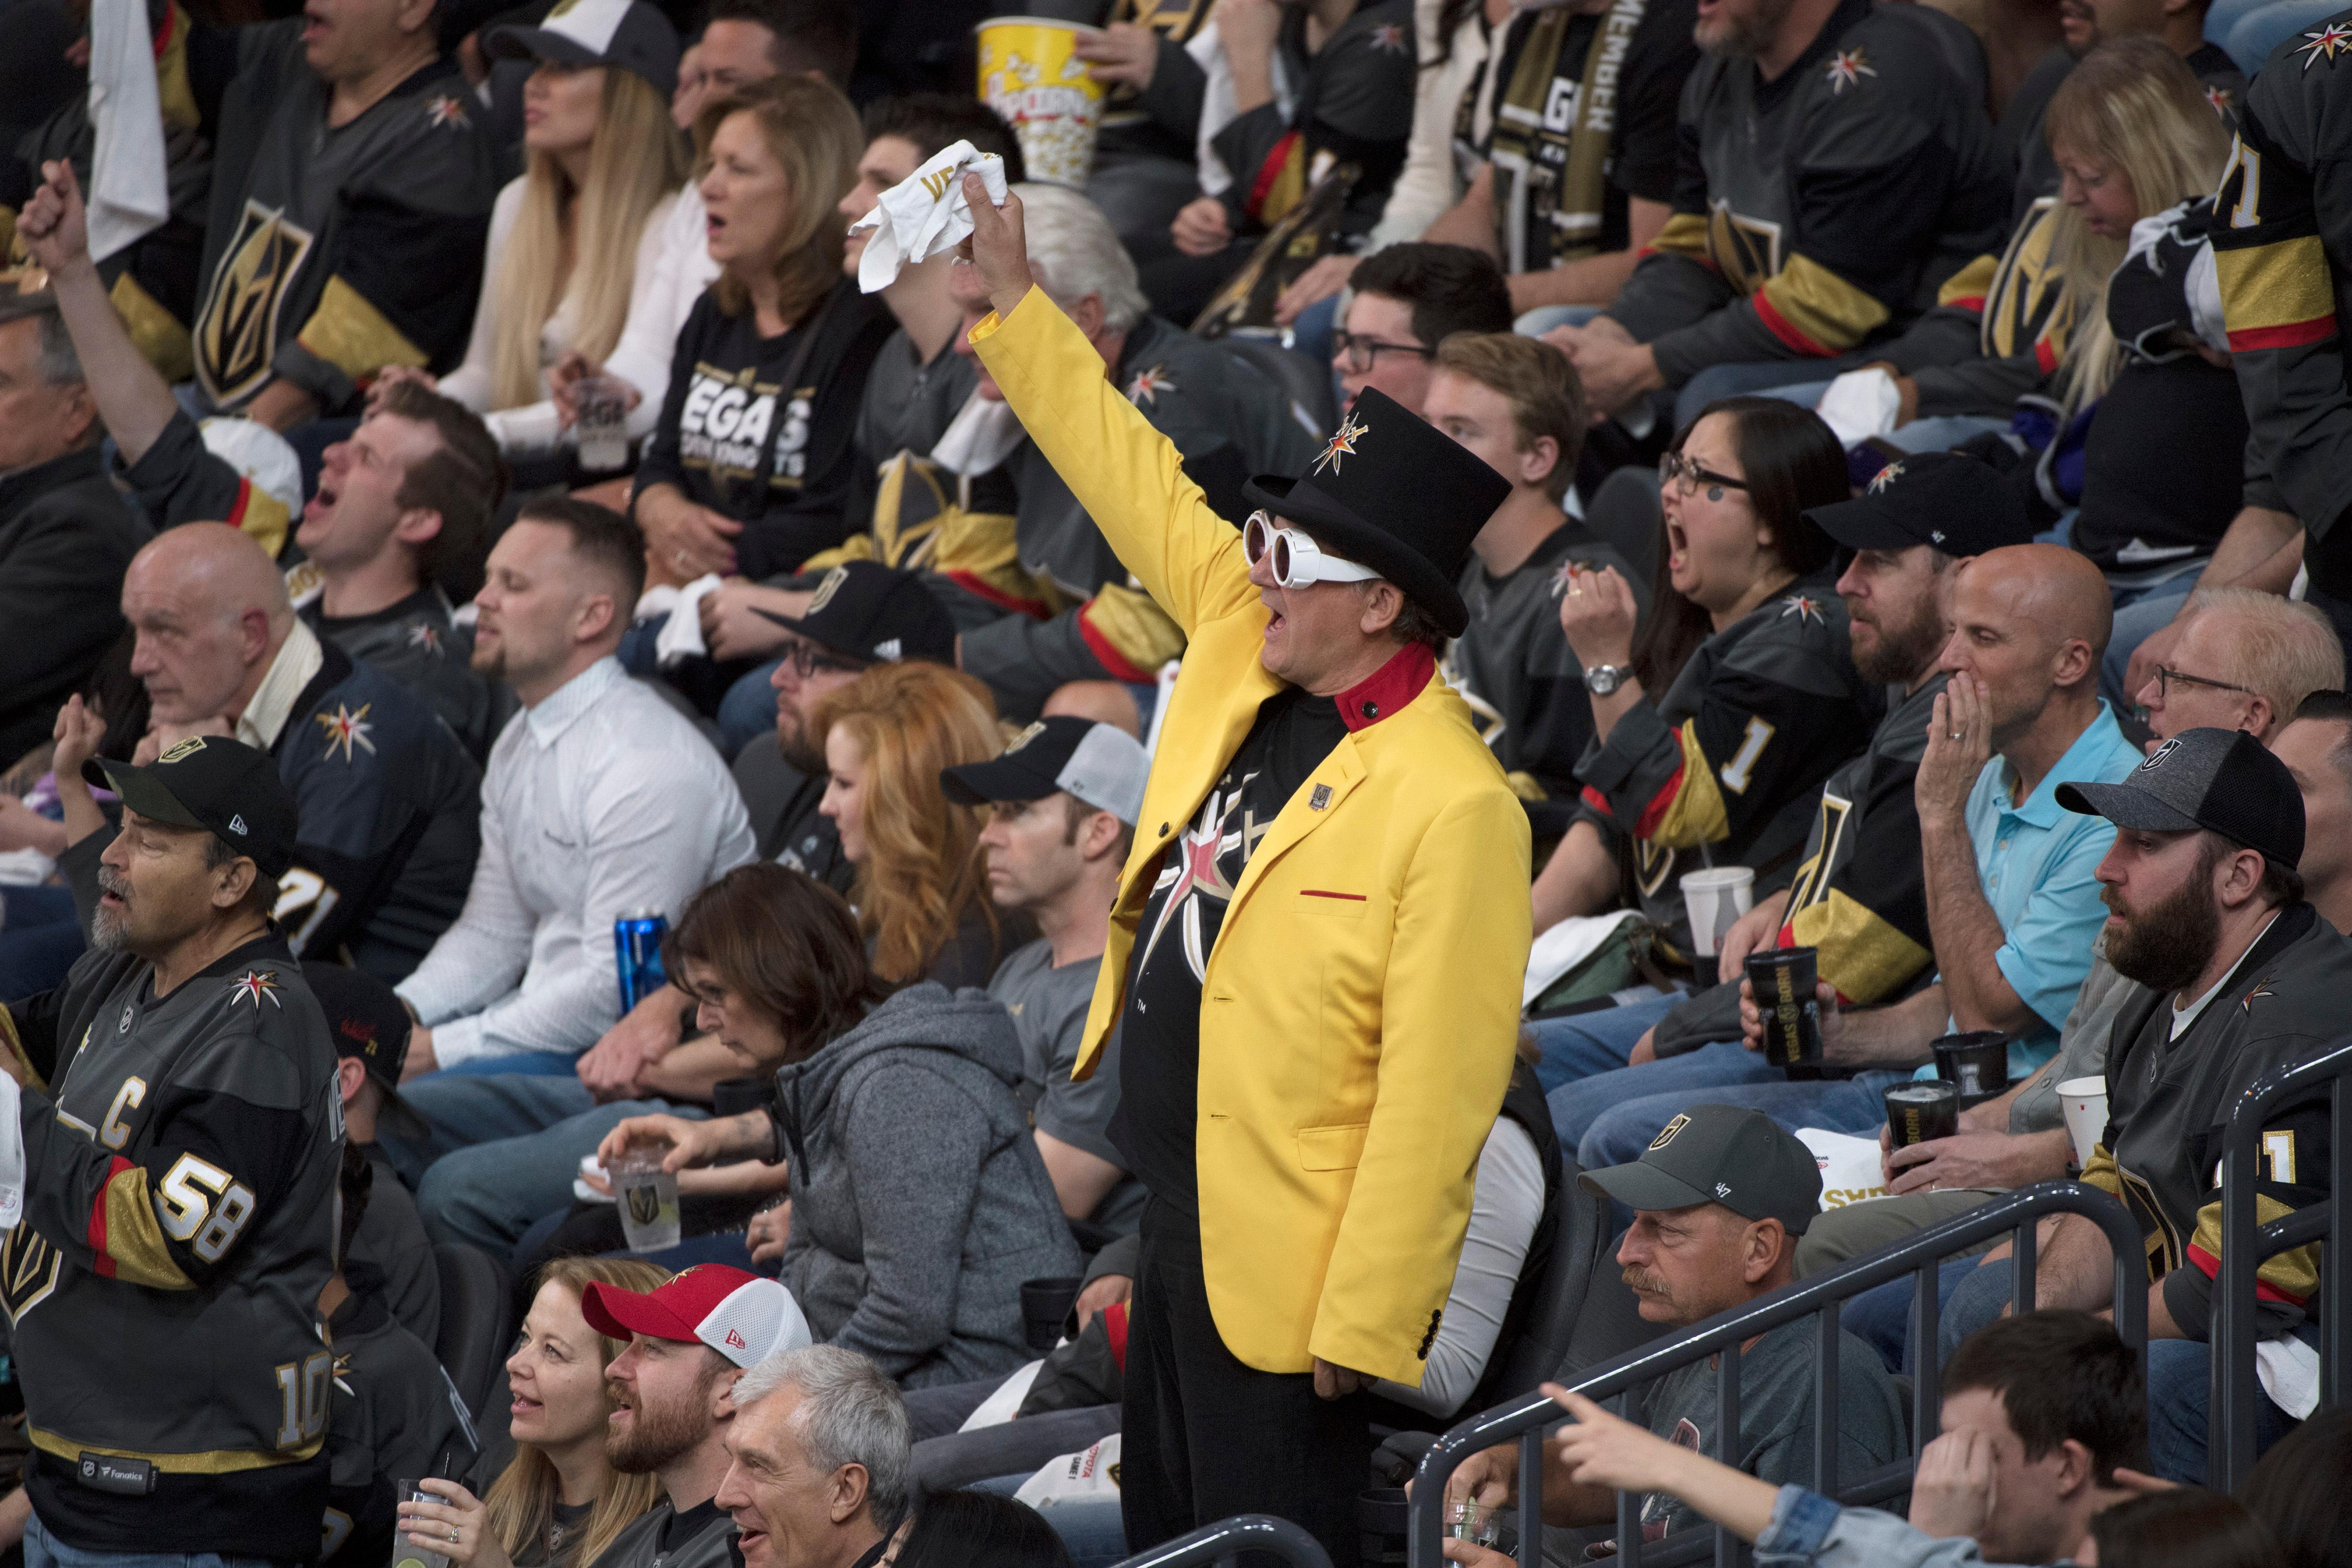 A Vegas Golden Knights fan cheers during the second period of Game 1 of their NHL hockey first-round playoff series against the Los Angeles Kings Wednesday, April 11, 2018 at T-Mobile Arena. The Knights won 1-0. CREDIT: Sam Morris/Las Vegas News Bureau